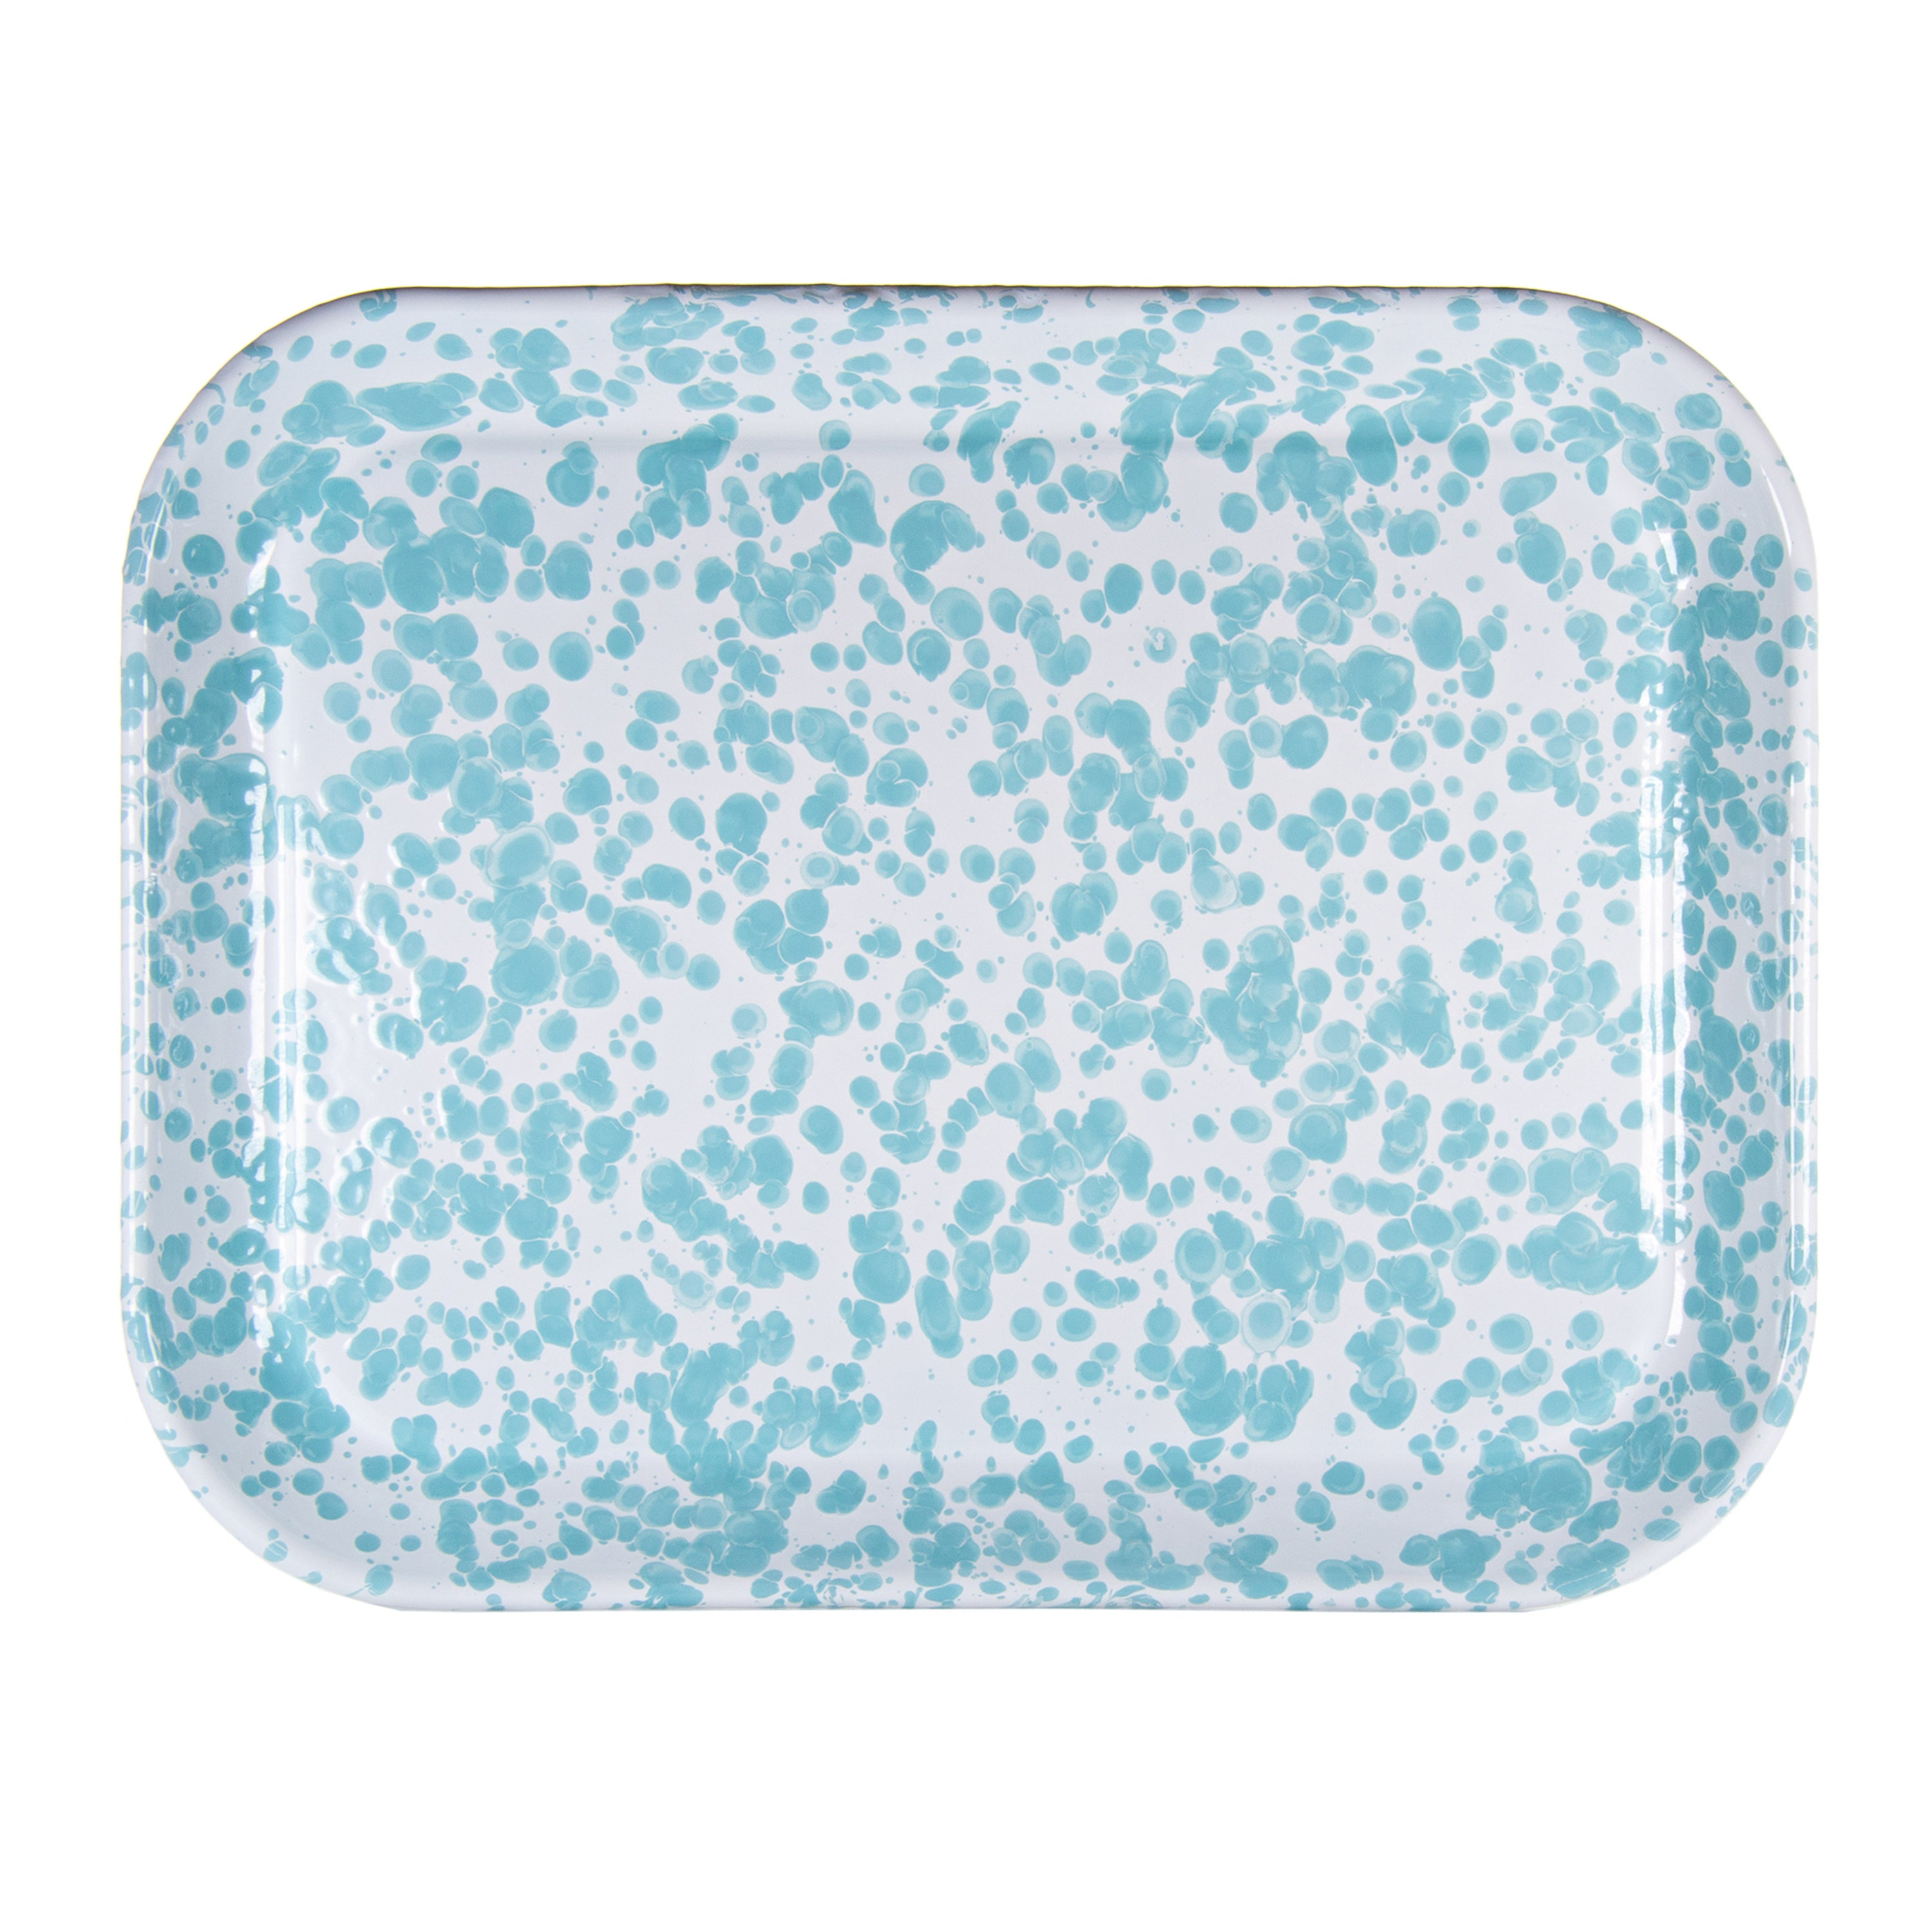 GL98 - Sea Glass Half Sheet Tray Image 1